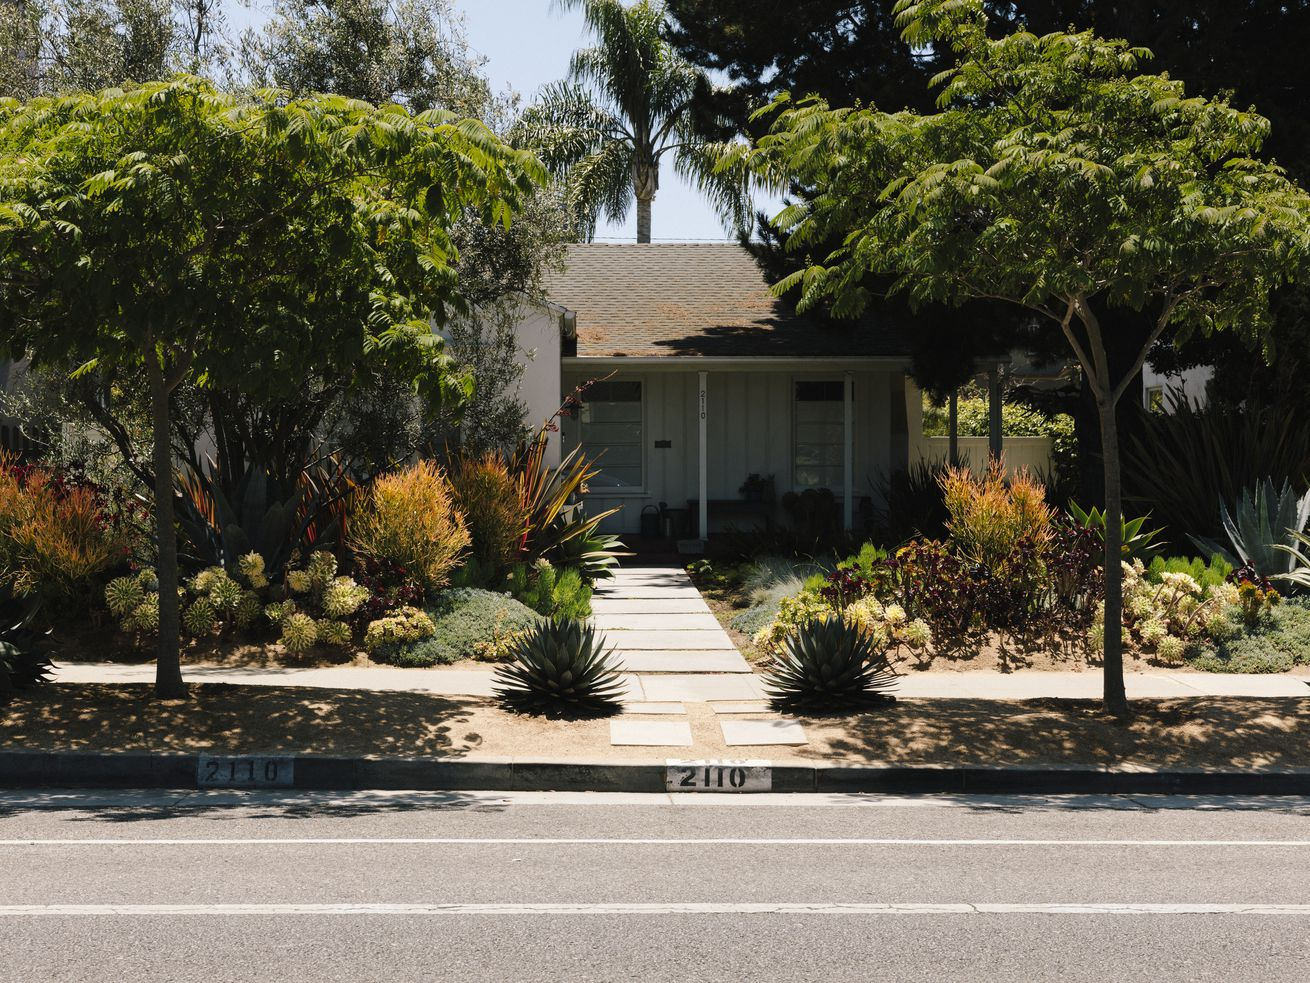 In LA County, the number of homes sold in April was 12 percent higher than the month before.